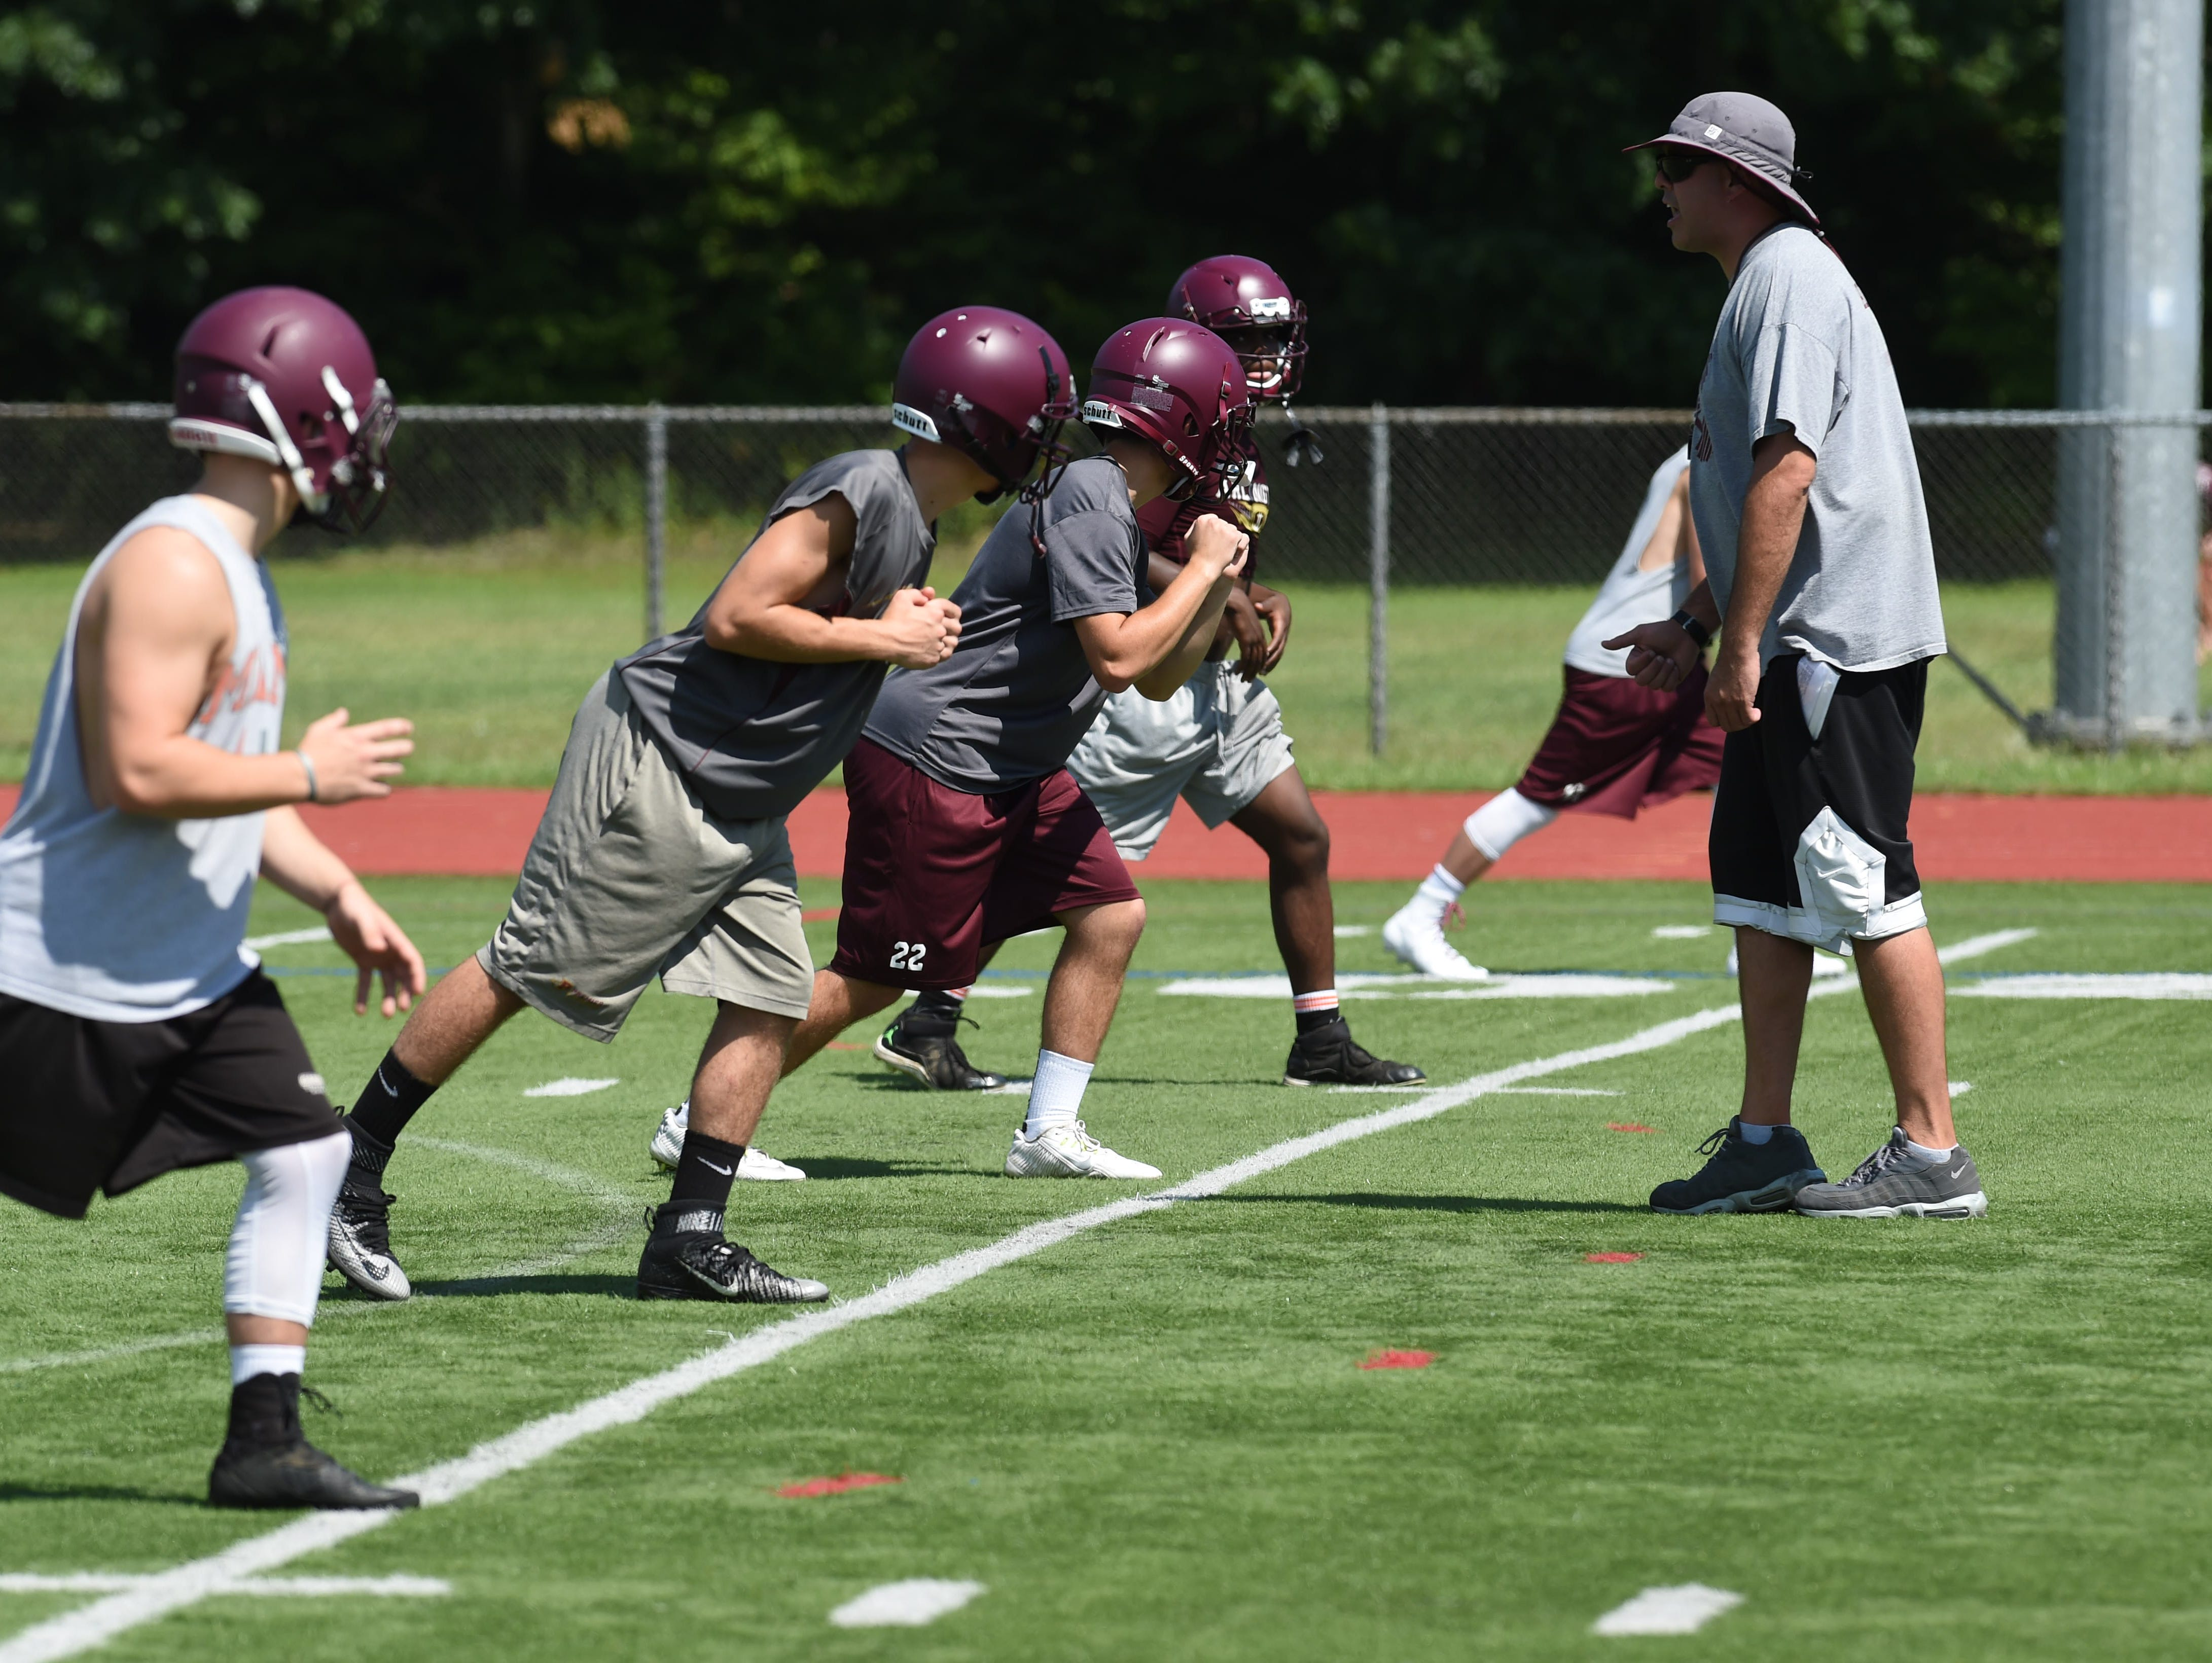 Jim Killian, assistant varsity football coach at Arlington High School, goes over the correct stance with a group of wide receivers during preseason football practice.